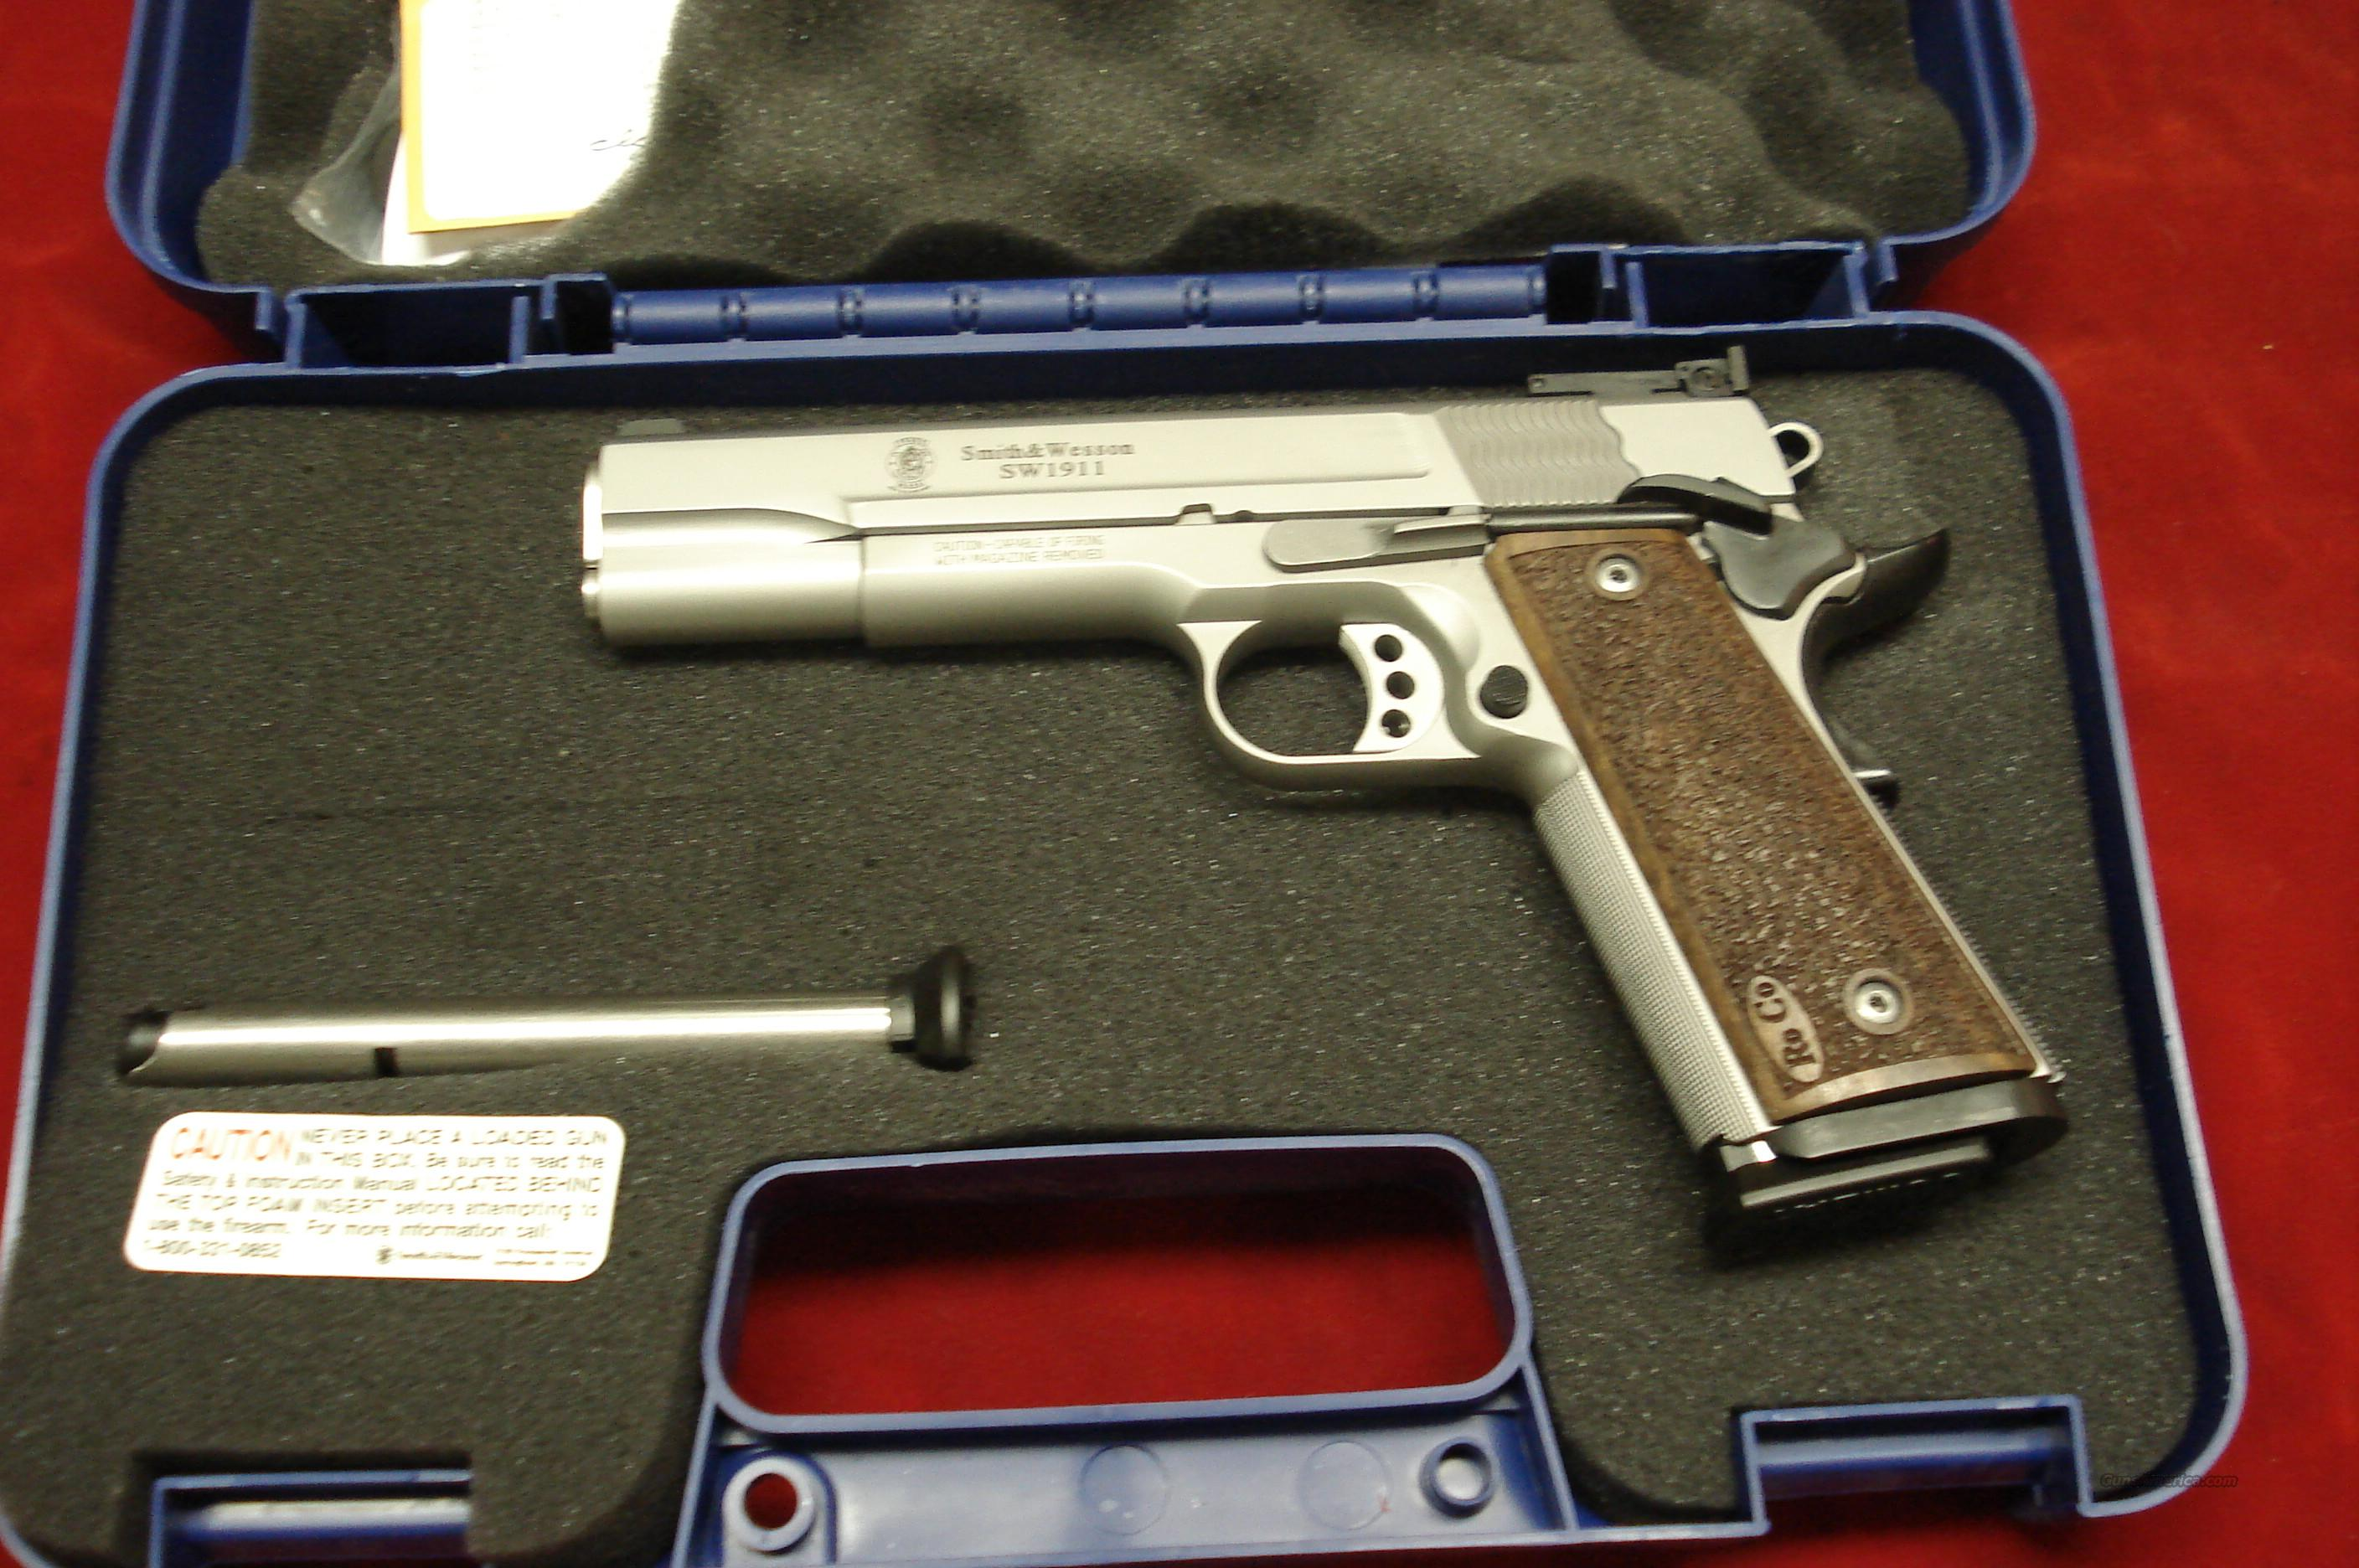 SMITH AND WESSON SW1911 PRO SERIES 9MM WITH ADJUSTABLE SIGHTS NEW  Guns > Pistols > Smith & Wesson Pistols - Autos > Steel Frame